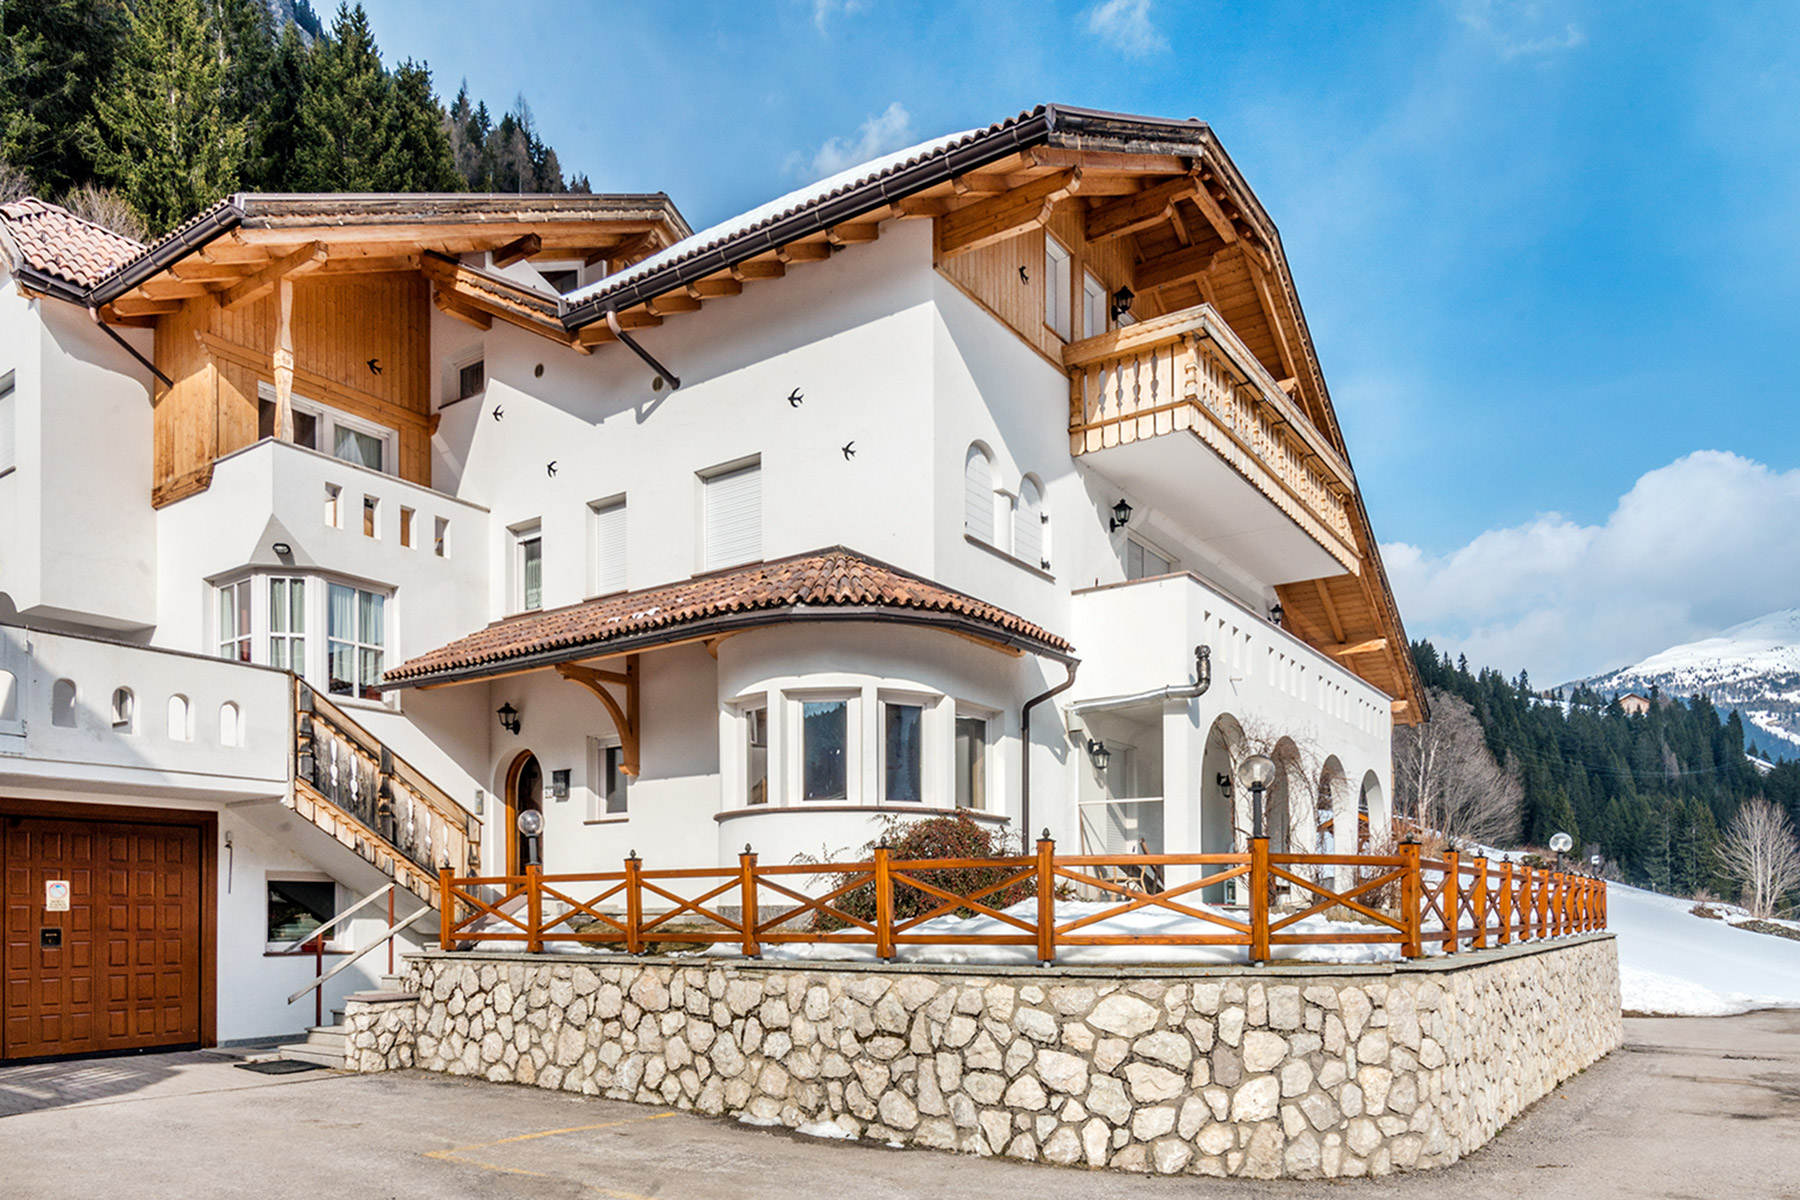 Single Family Home for Sale at New construction Villa by famous architect Hermann Kostner Via Alfauro Arabba, Belluno 32020 Italy